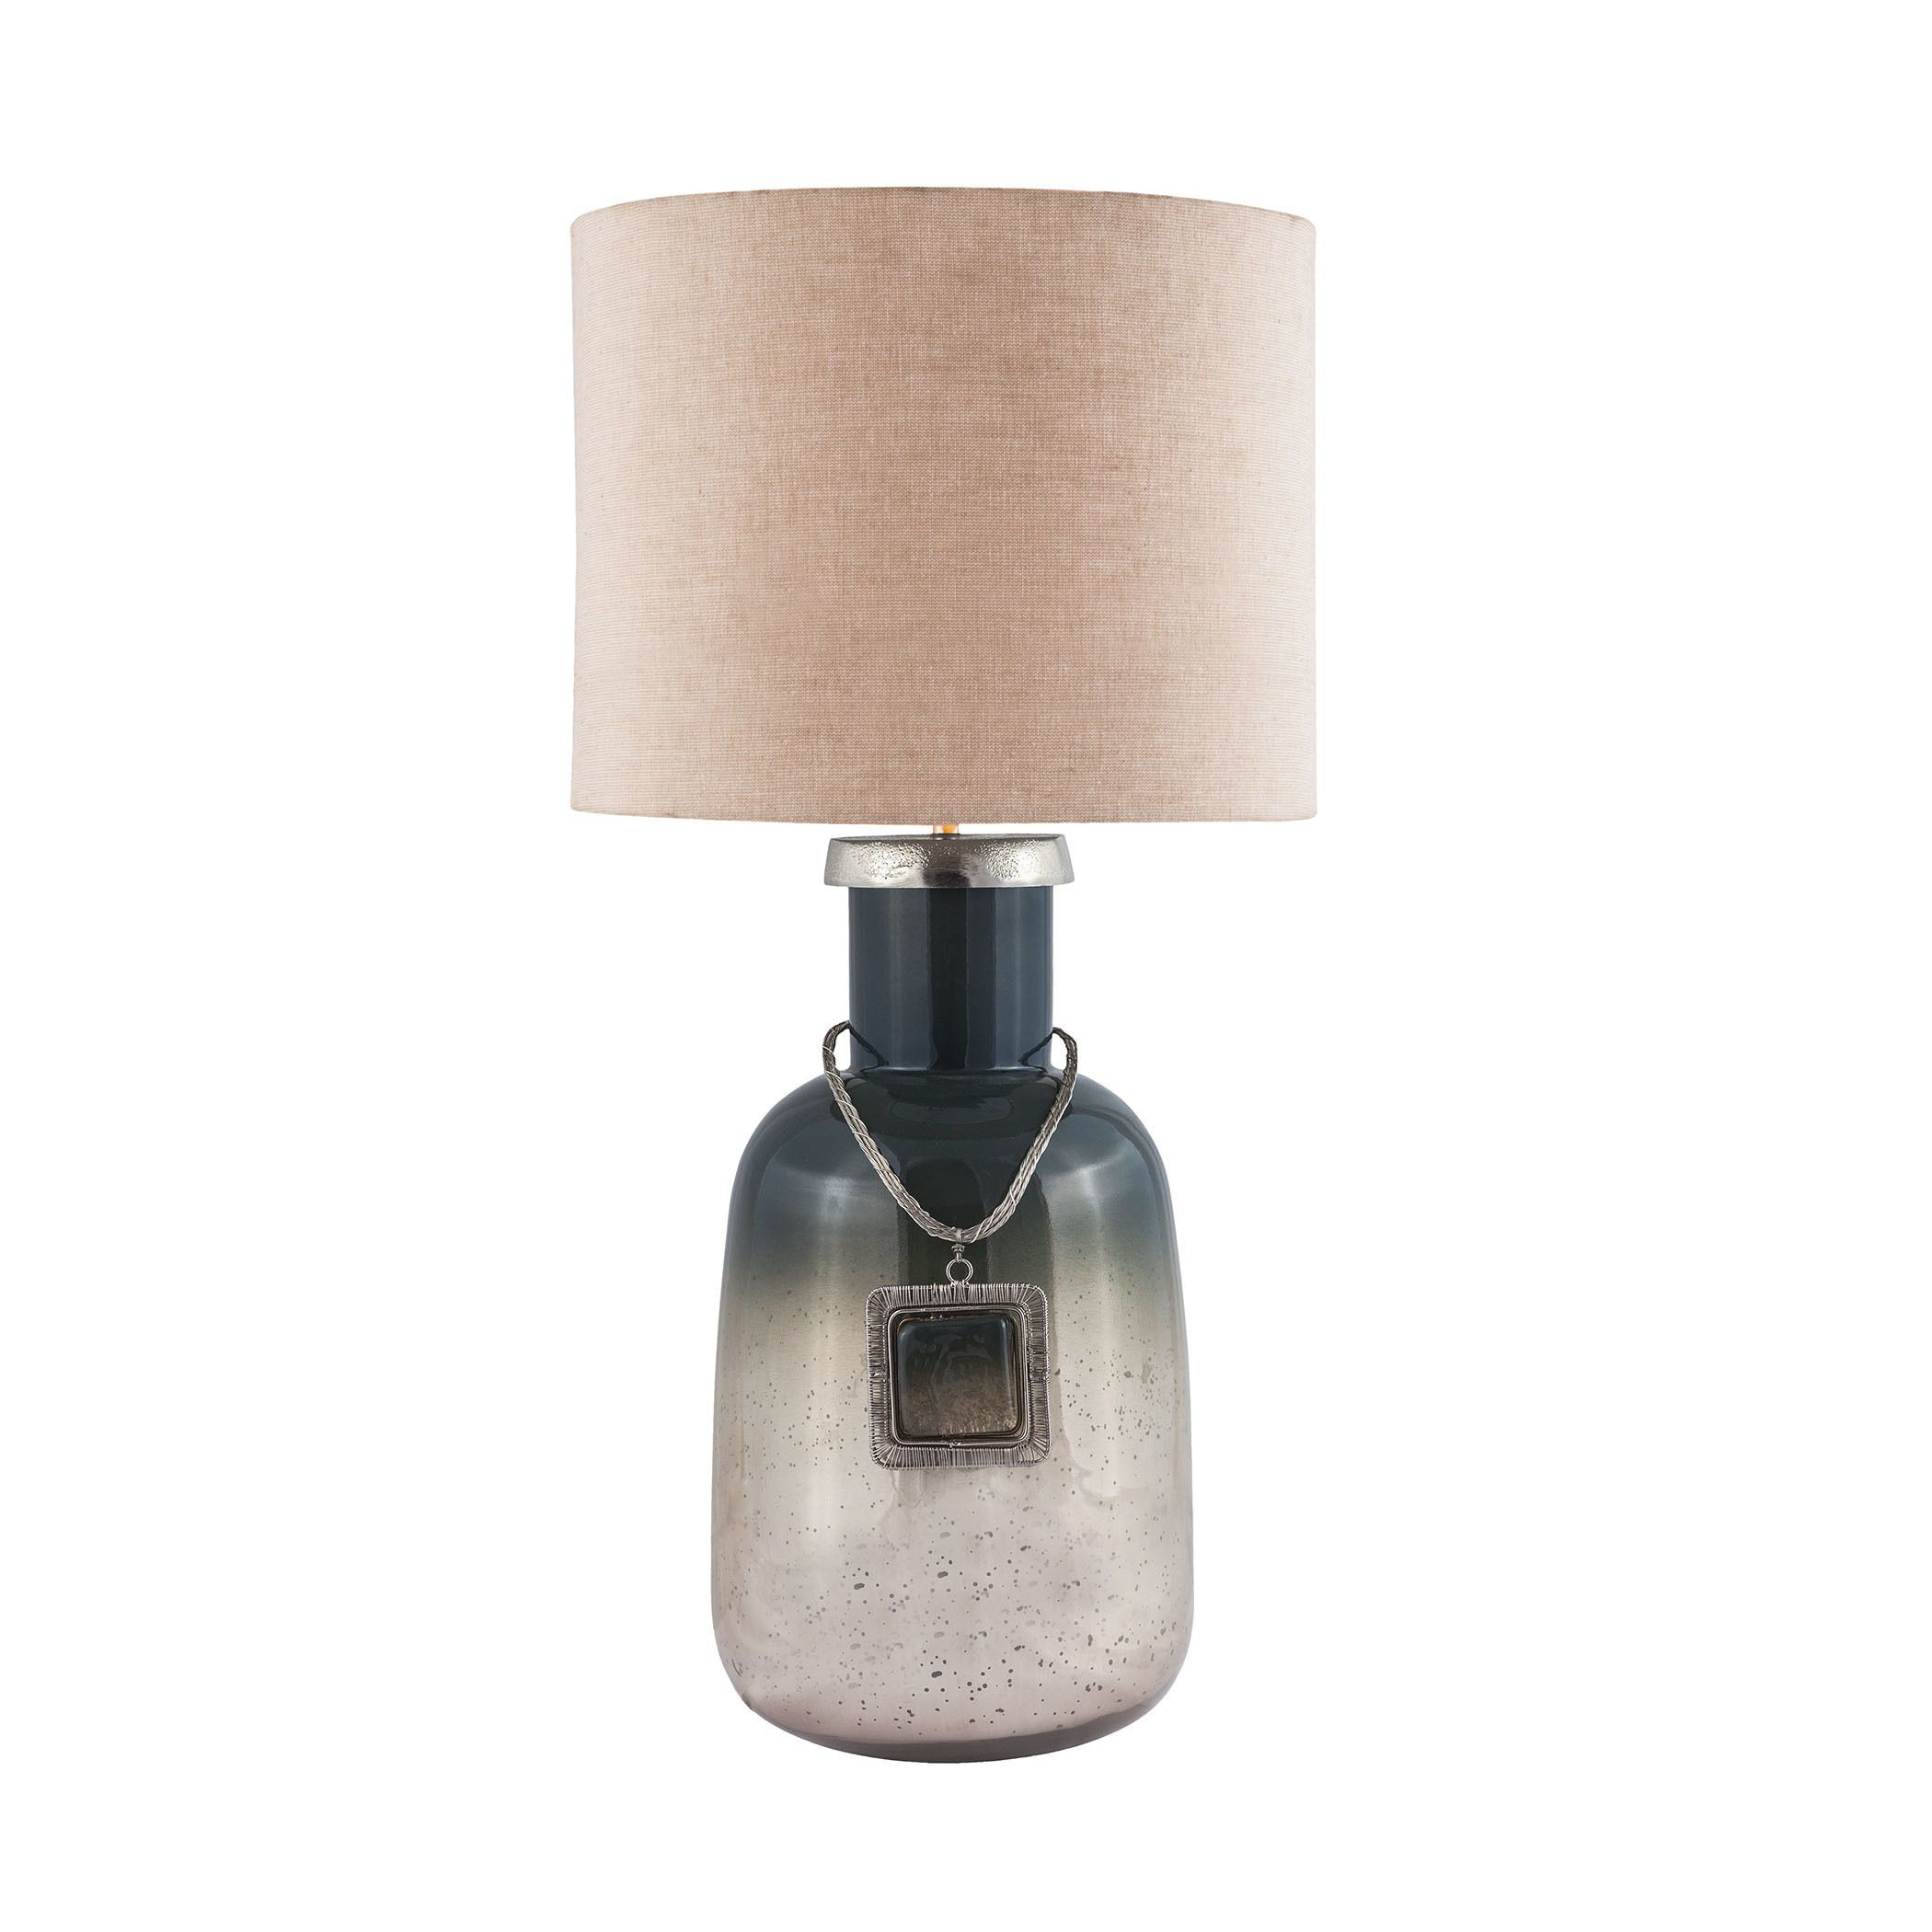 Dimond lighting grey glass and metal table lamp iceland mercury